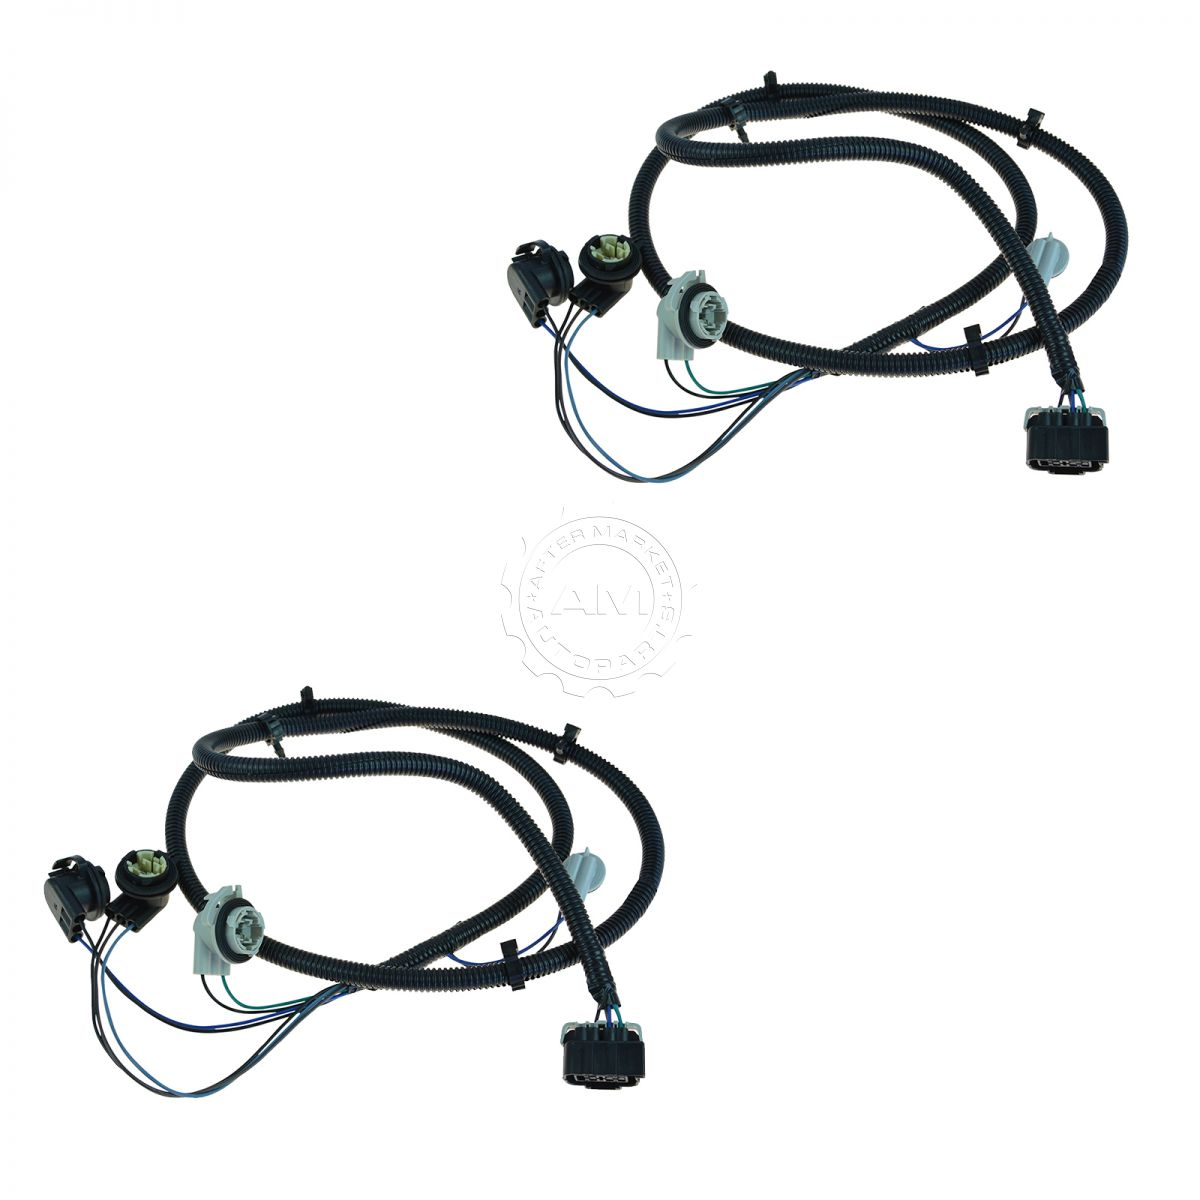 Silverado Tail Light Wiring Harness Great Design Of Diagram Chevrolet Oem Pair For Chevy 1500 2500 2008